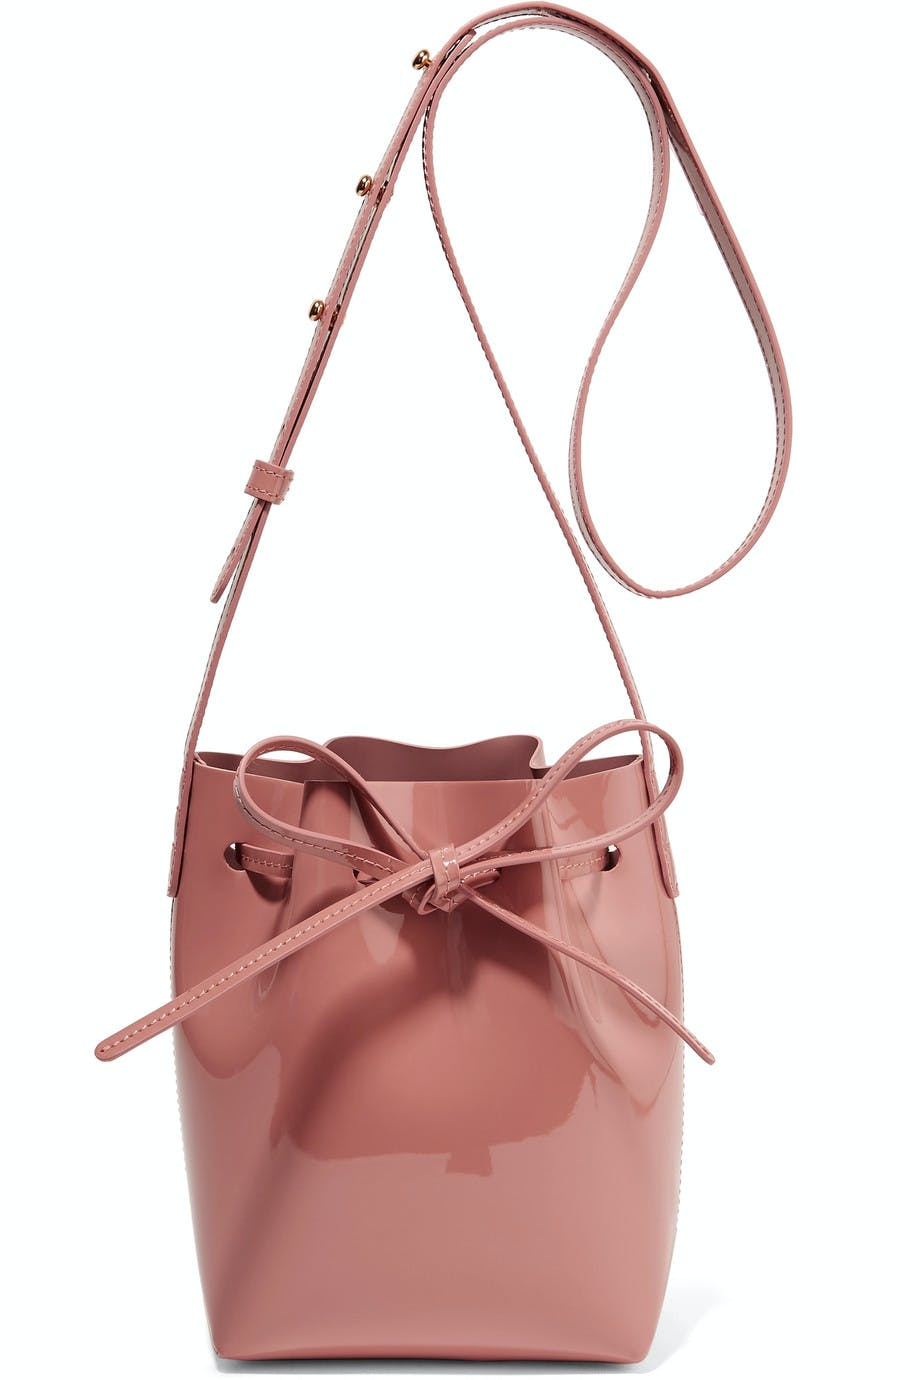 15 Of The Best Bucket Bags To Shop Right Now